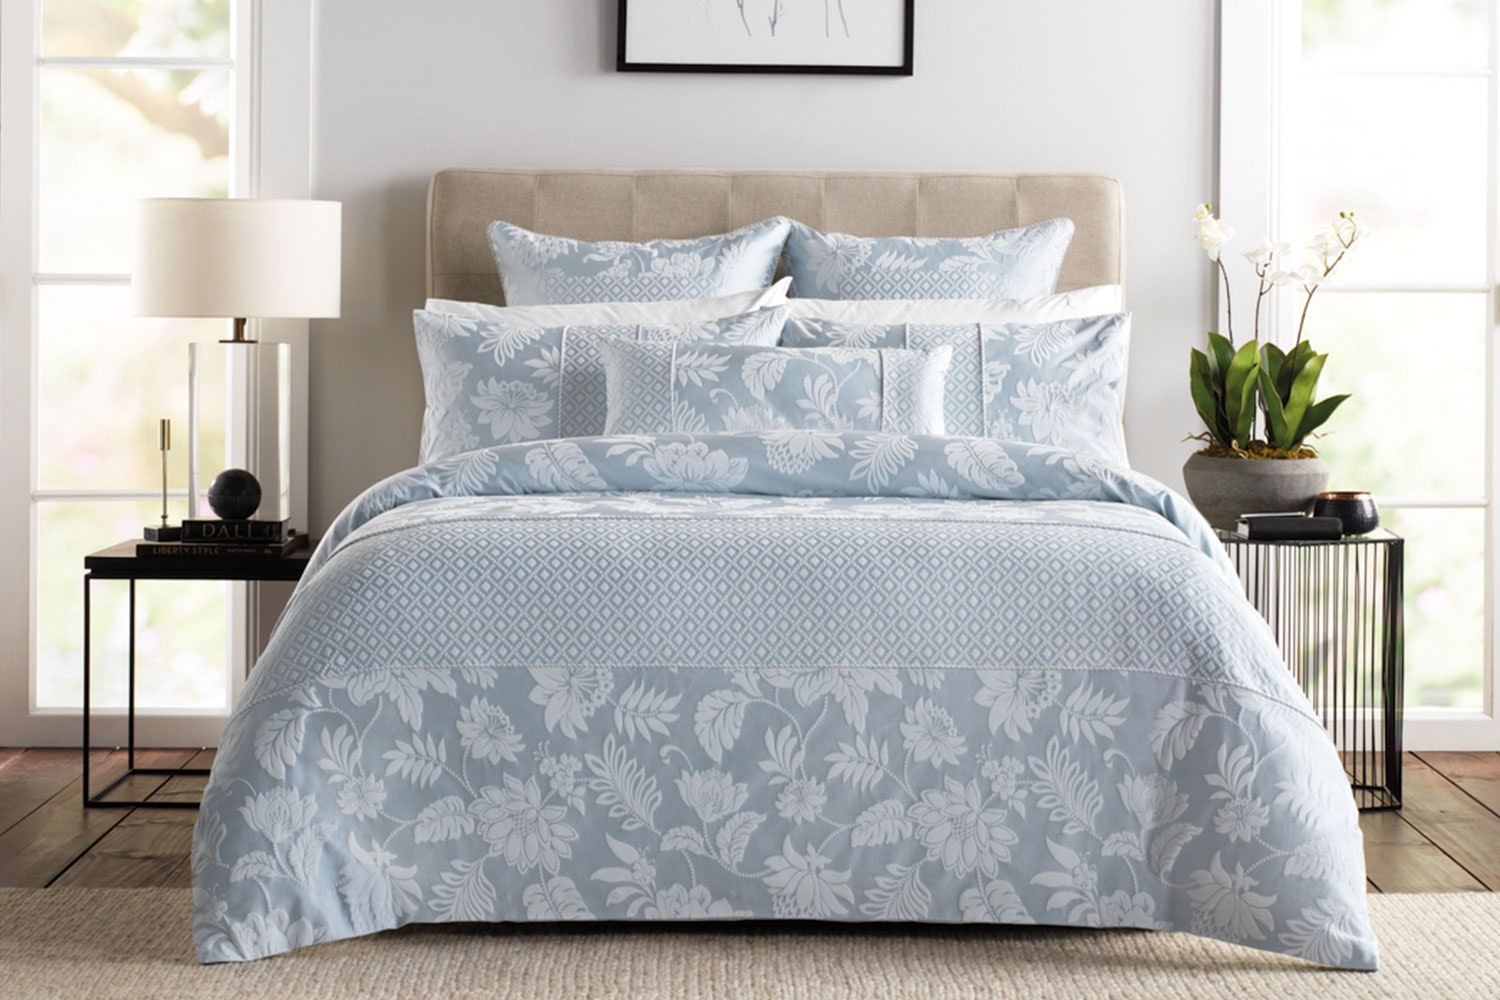 Angelis Haze Duvet Cover Set by Sheridan